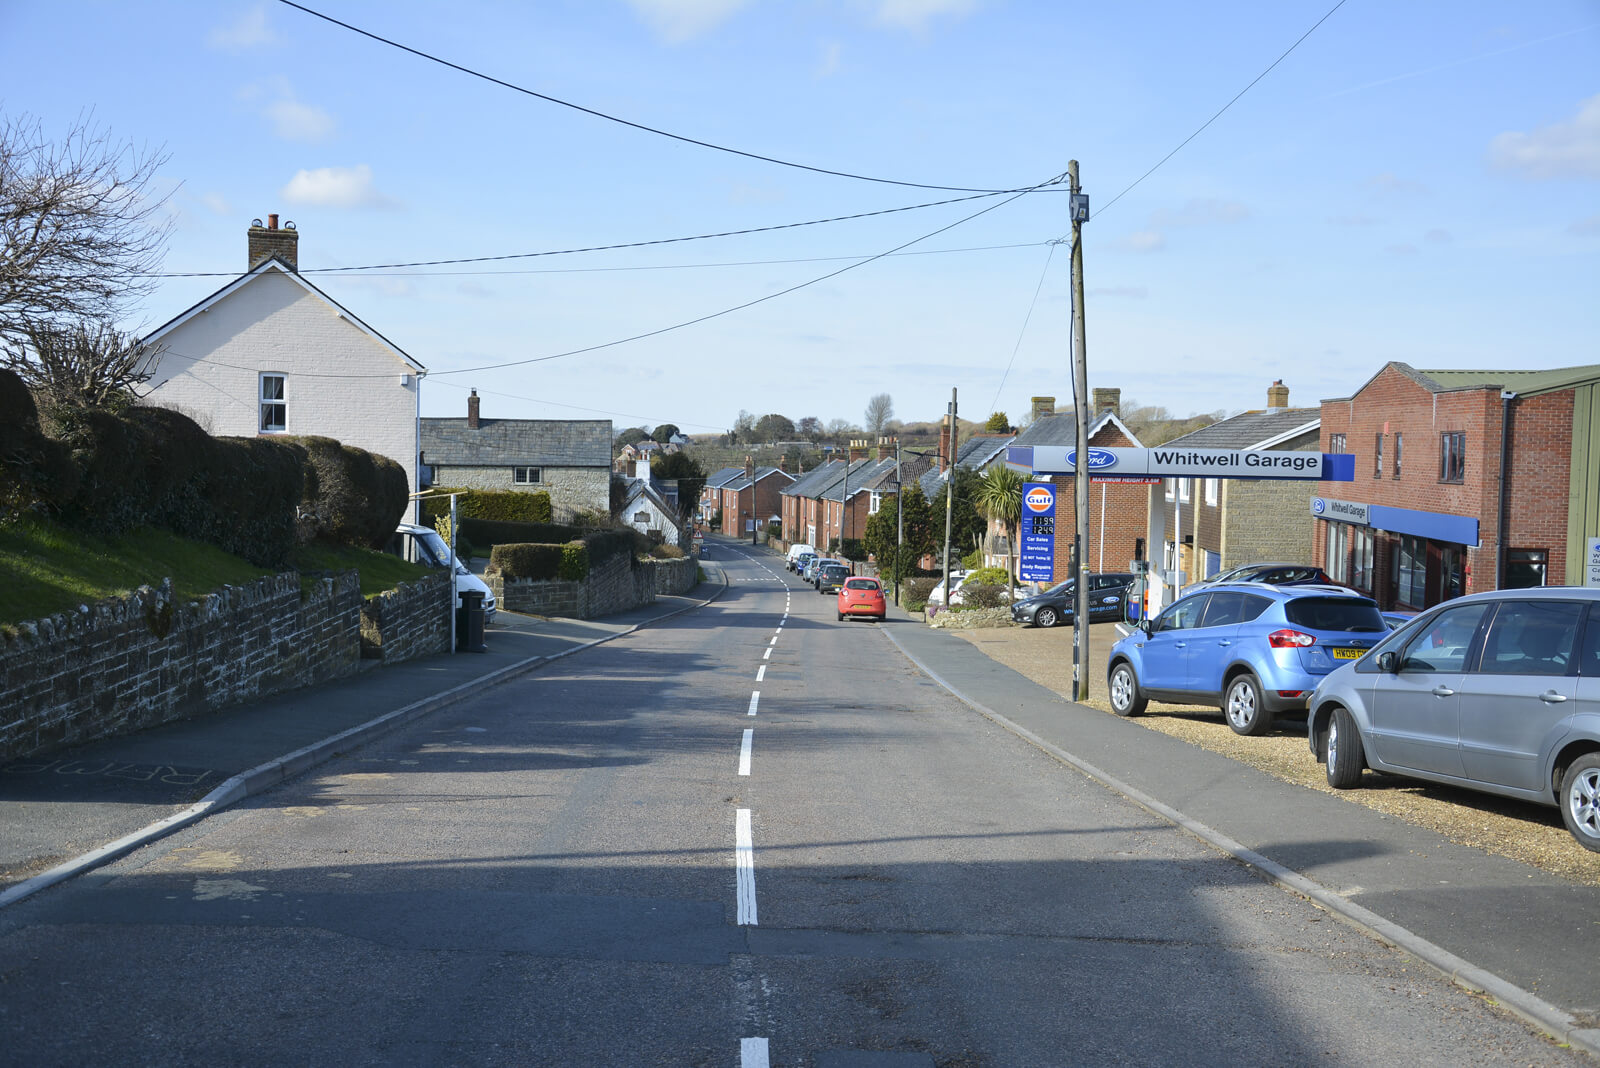 20150322 DSC_0546 Whitwell High Street